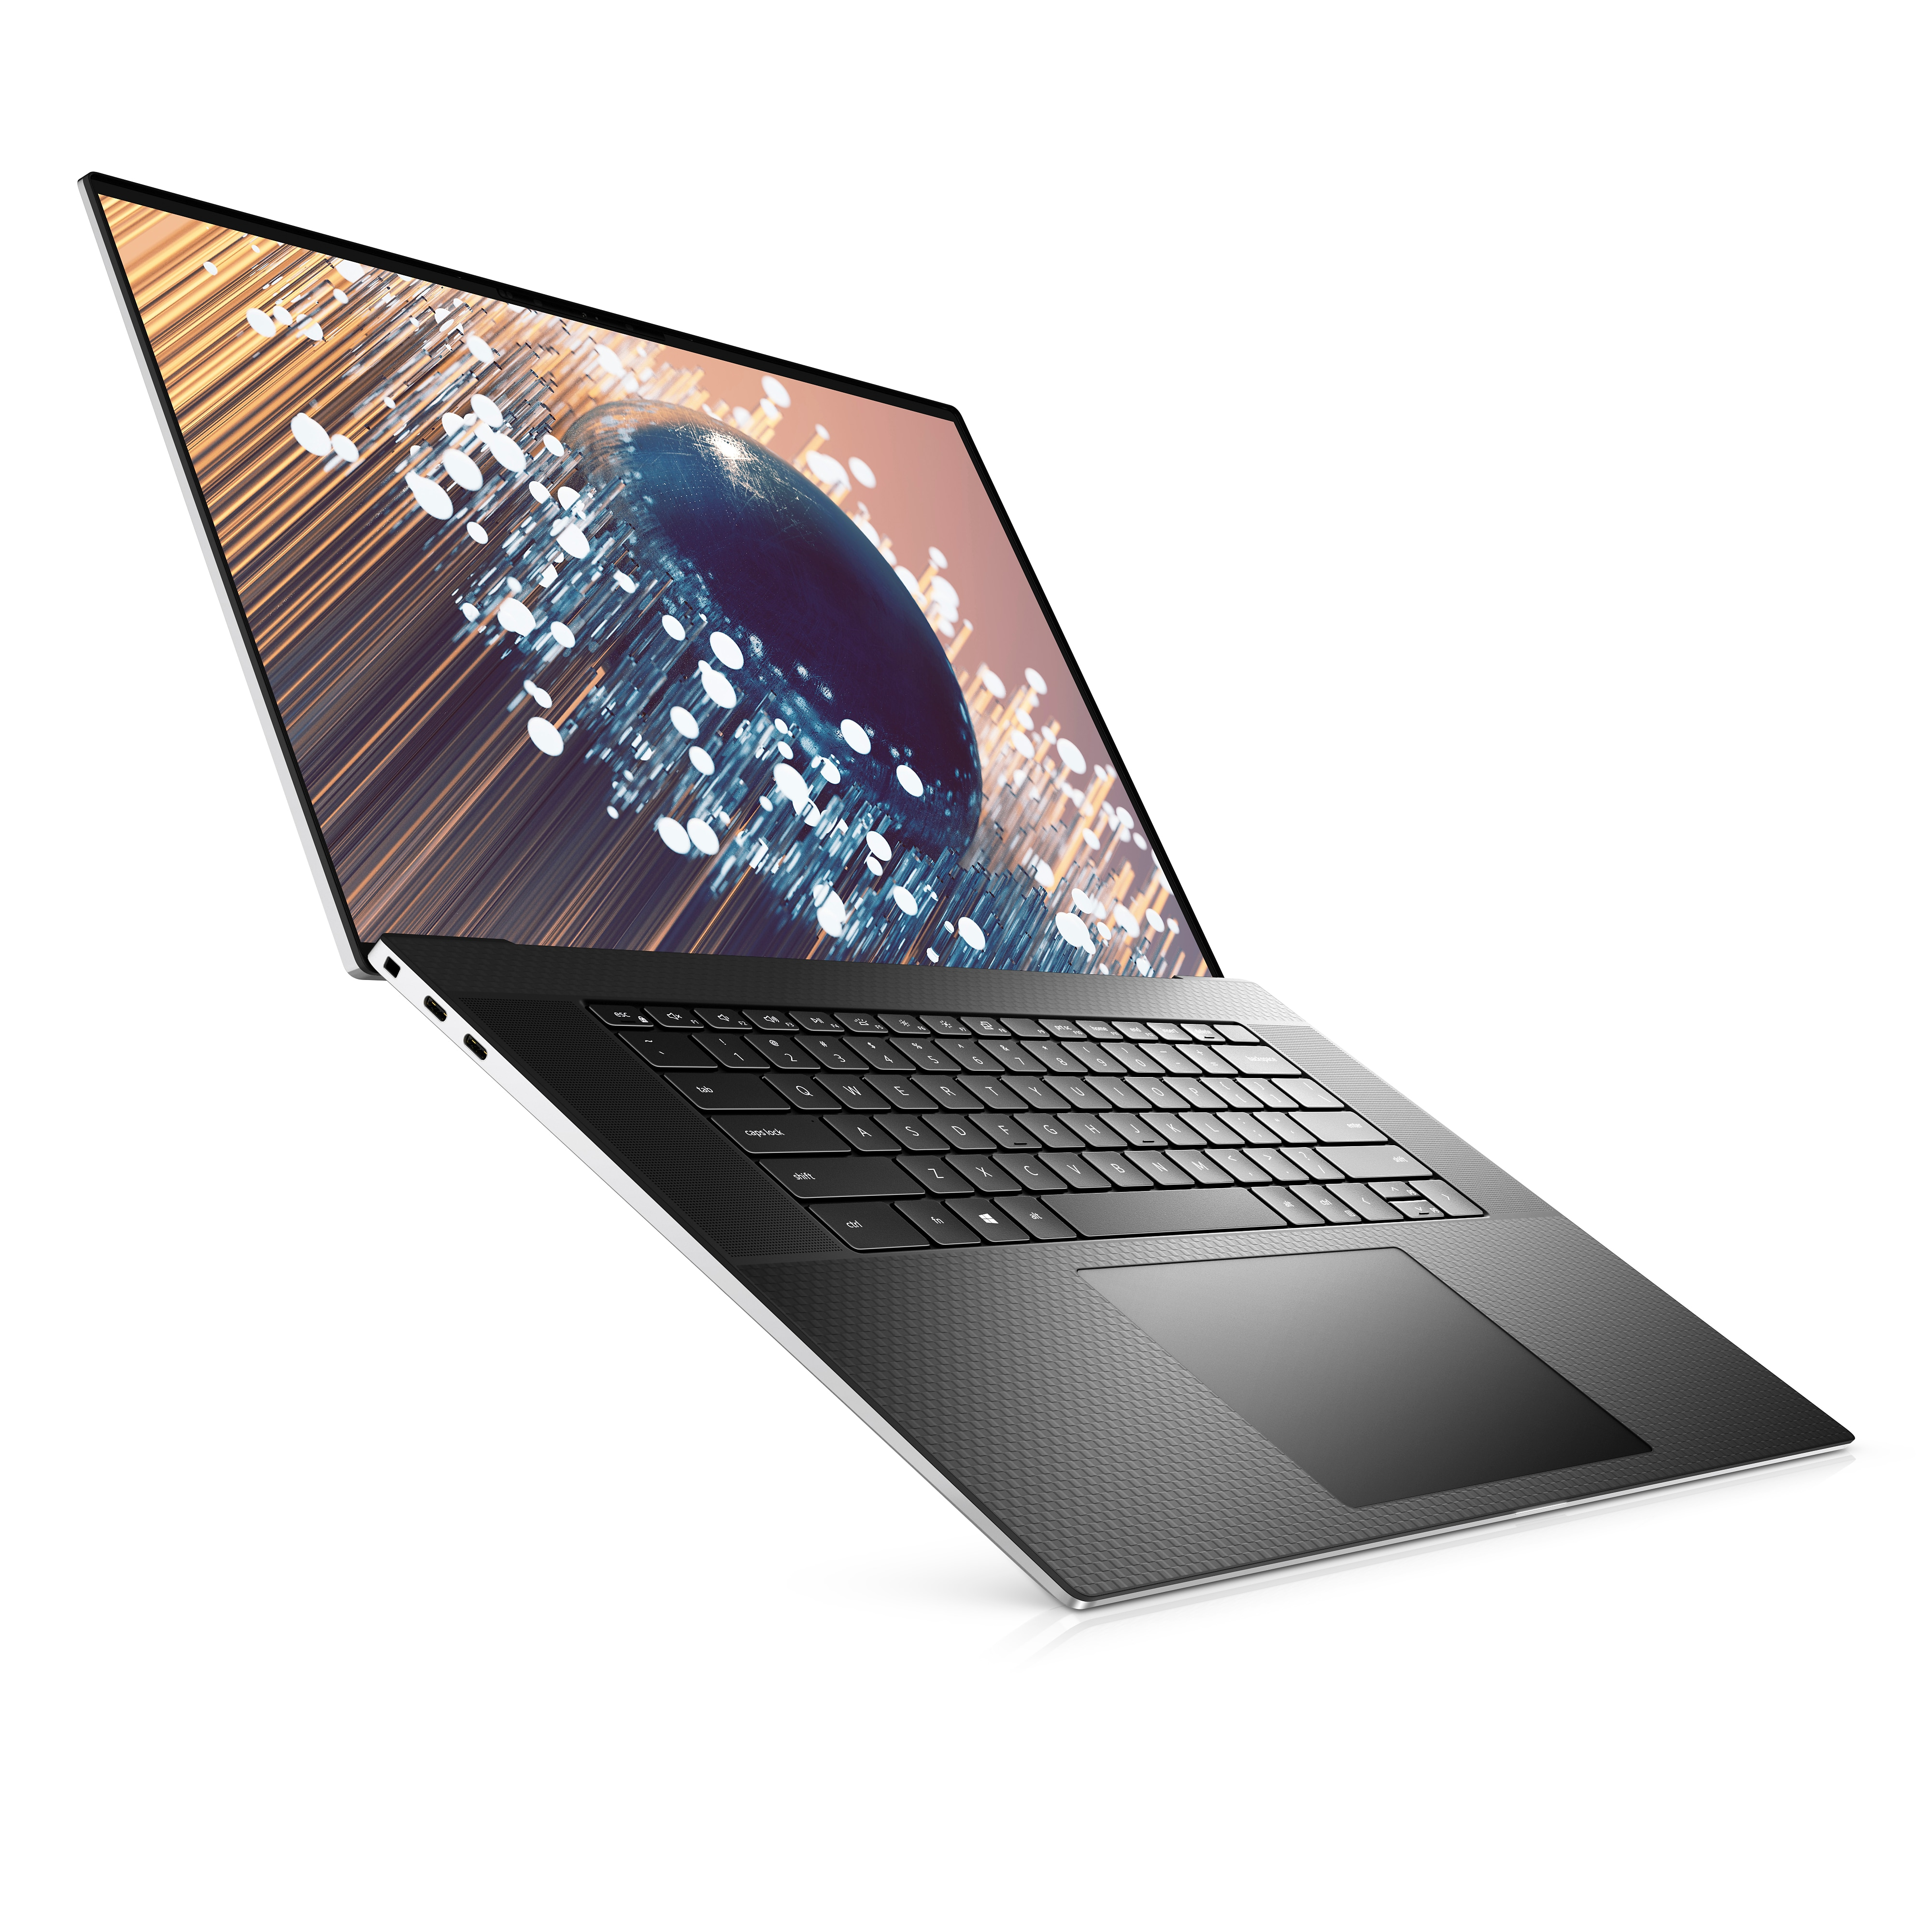 17 inch Laptop for Black Friday Deals